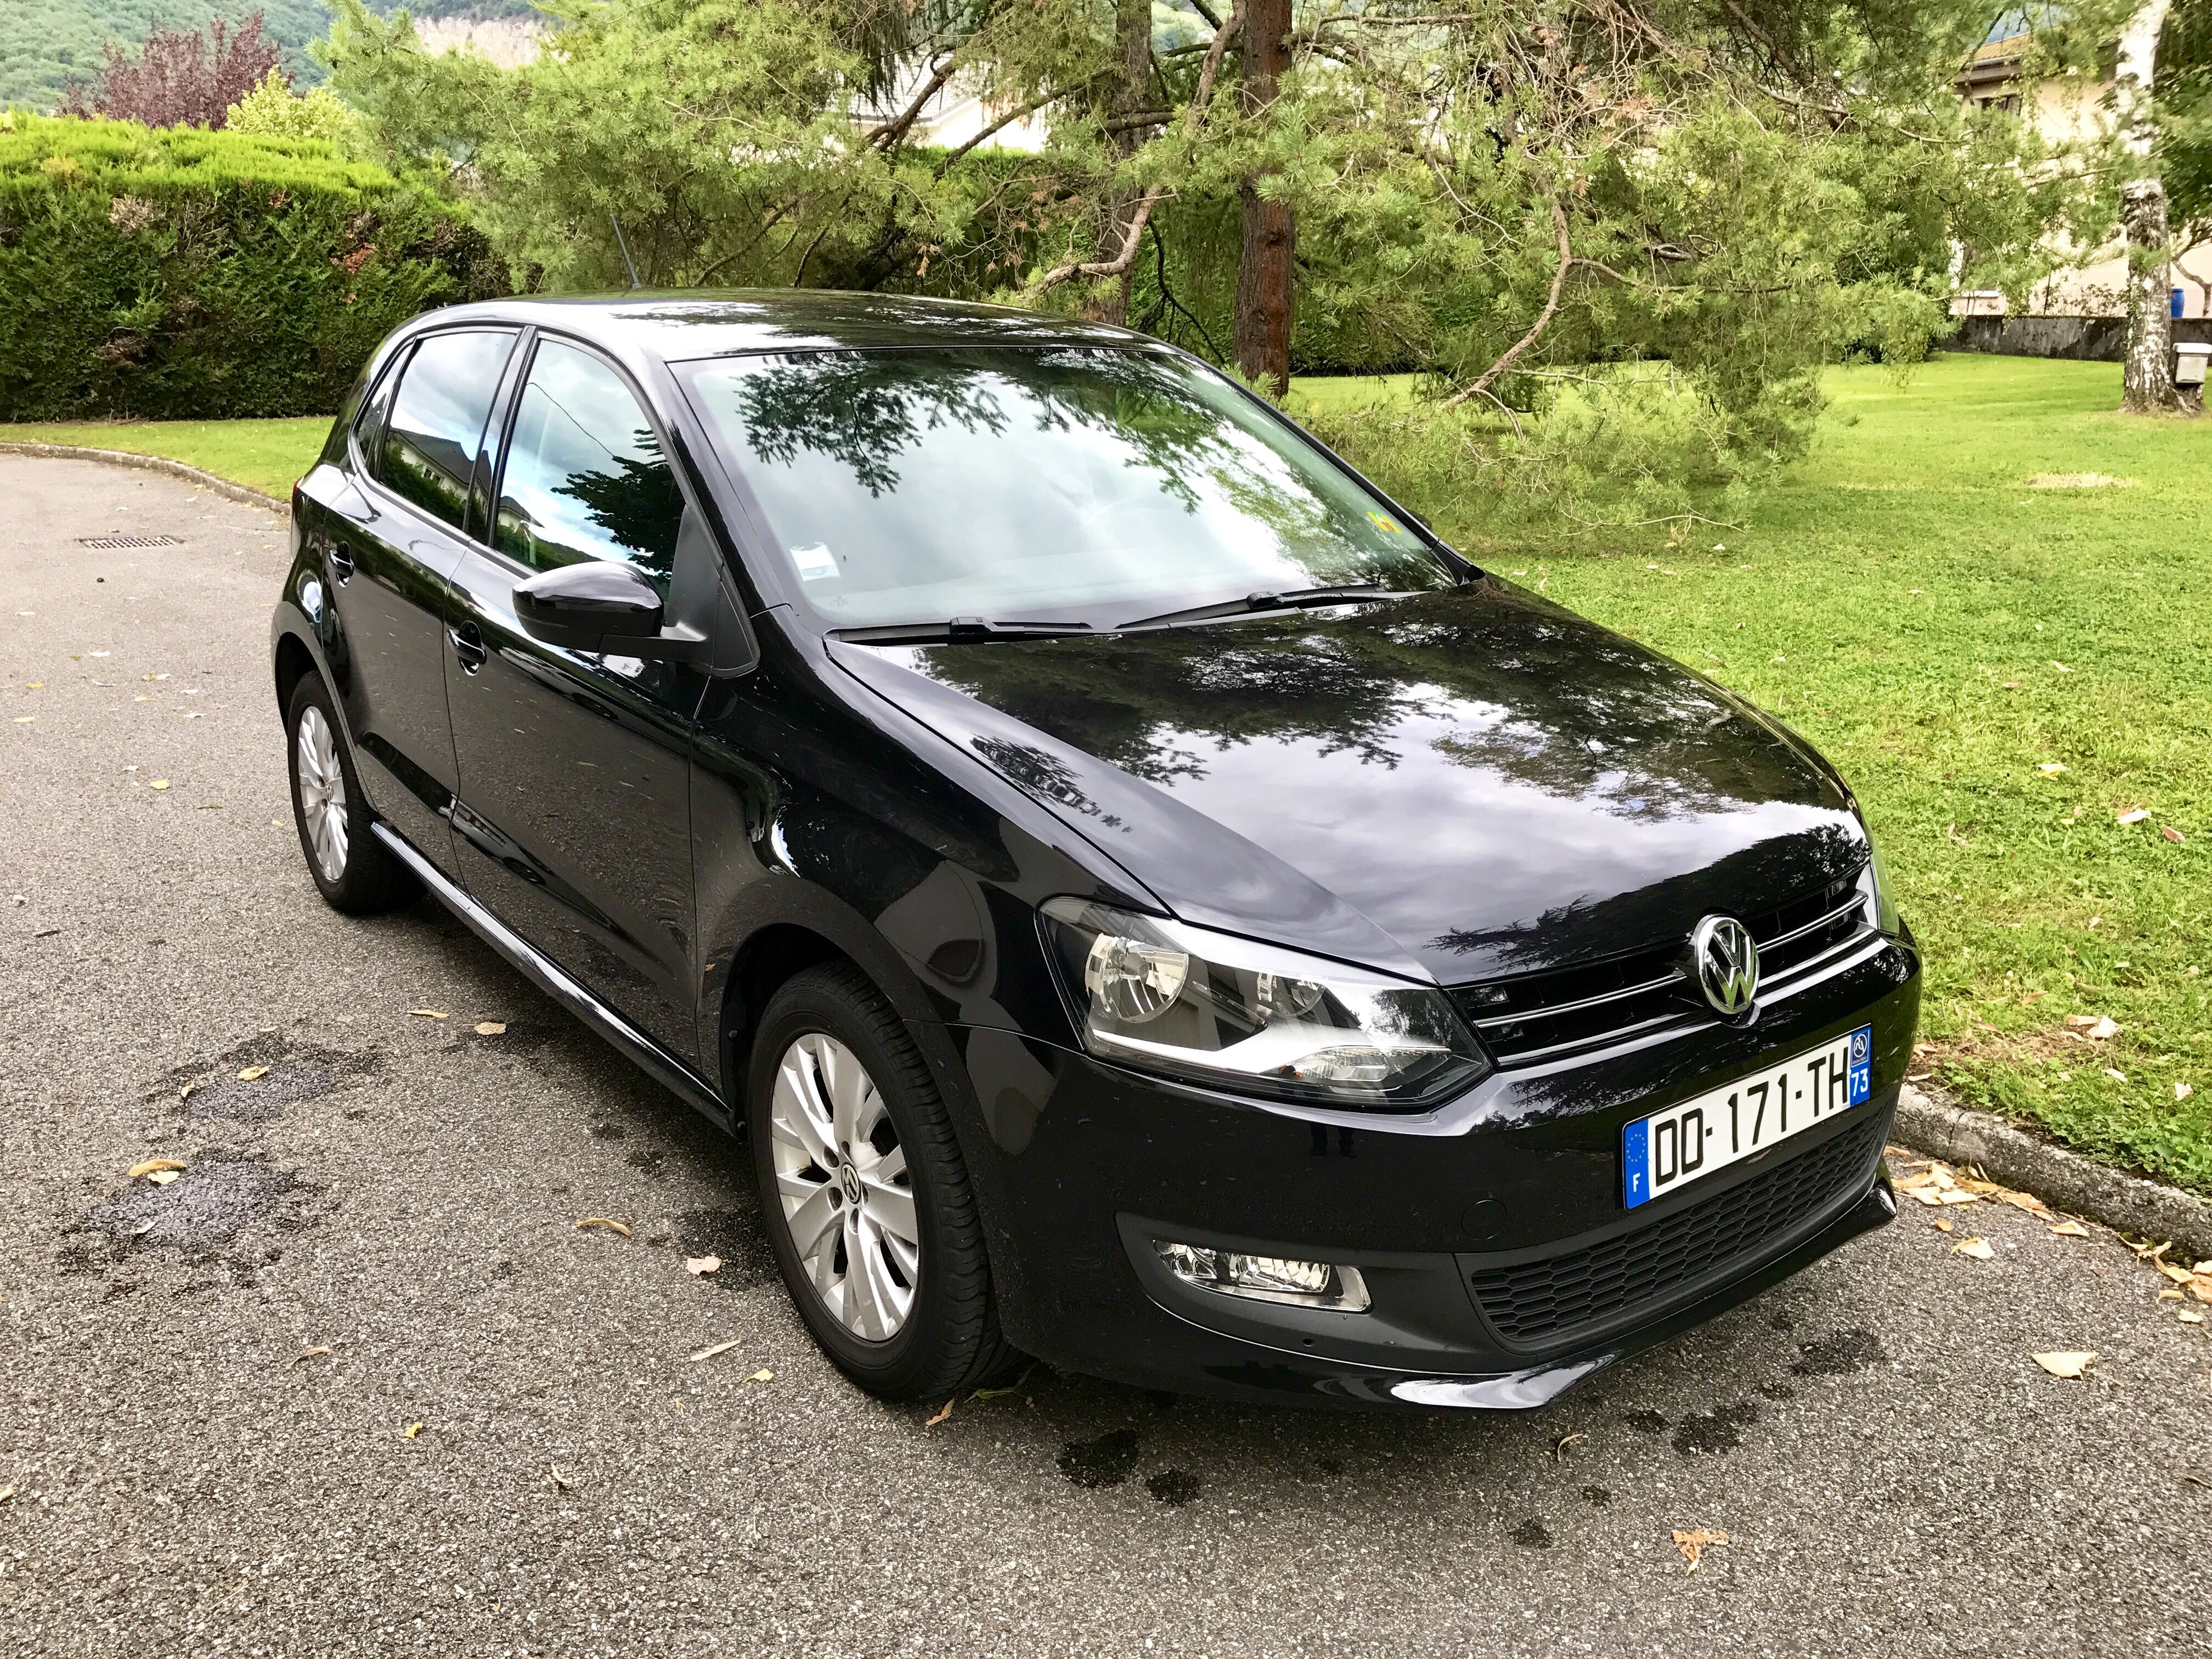 Volkswagen Polo 1.4 Match II, 2014, Essence